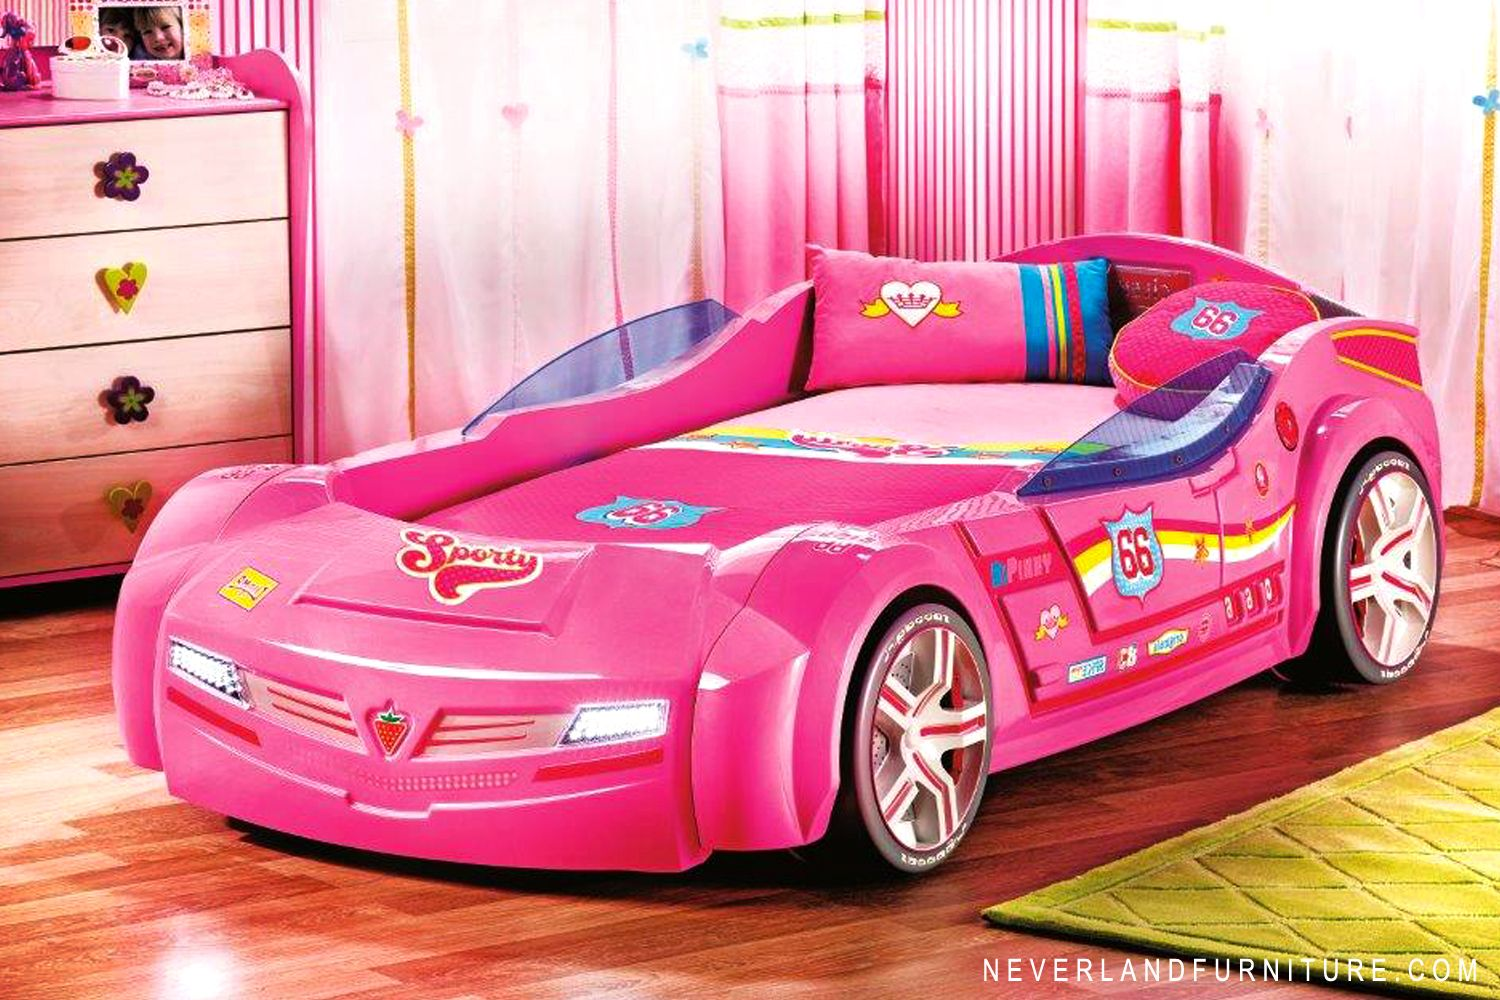 Turbo Series Pink Pacer Toddler Car Bed Car Bed Bed